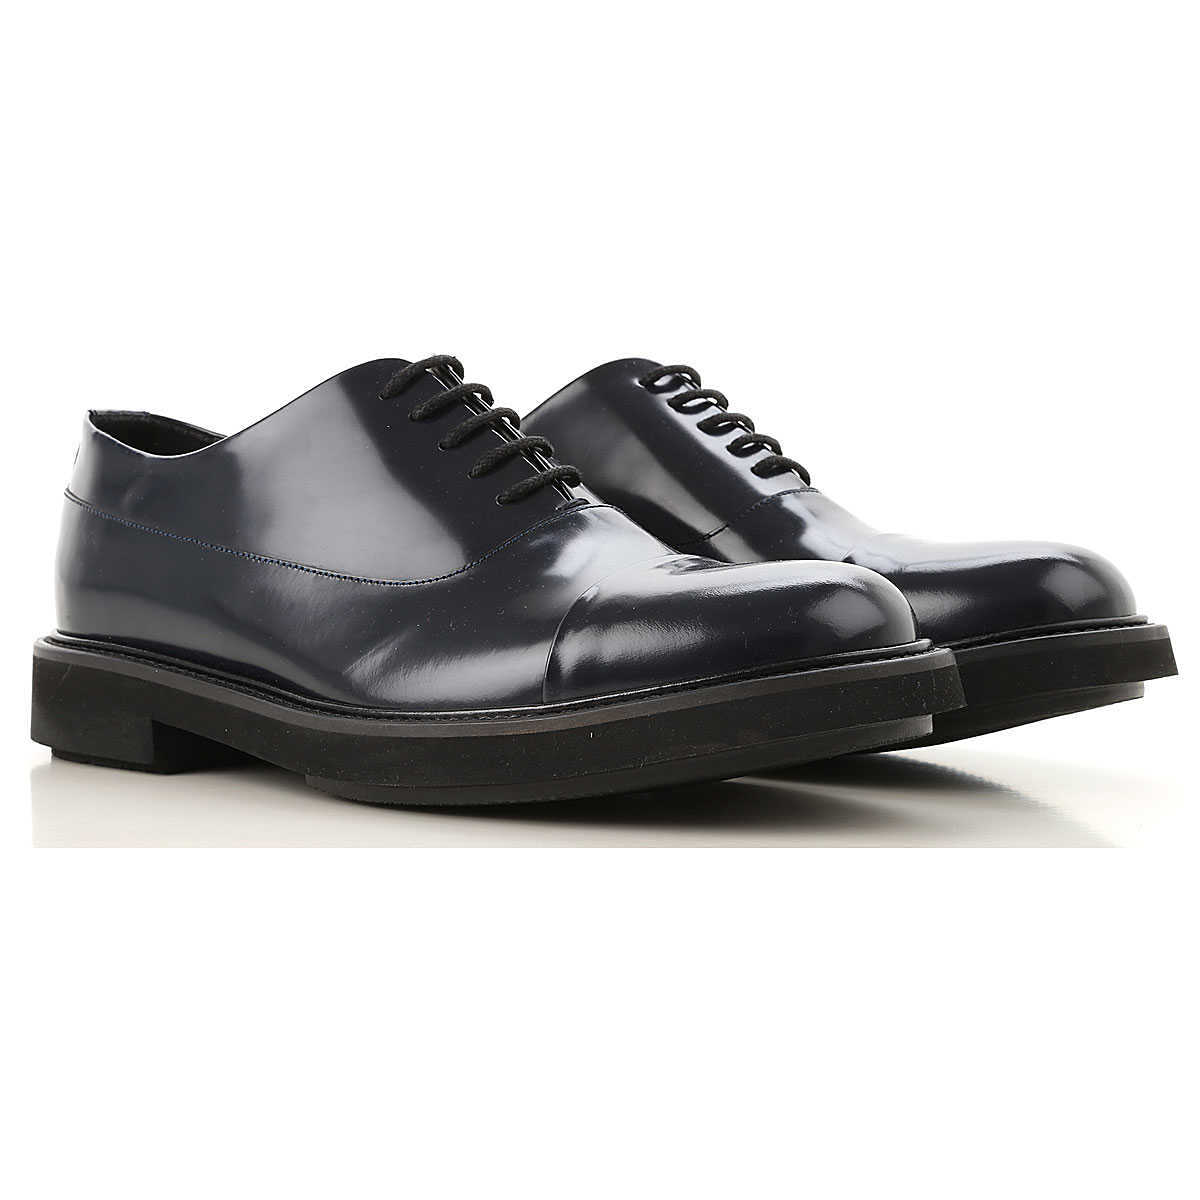 Emporio Armani Lace Up Shoes for Men Oxfords Derbies and Brogues On Sale DK - GOOFASH - Mens FORMAL SHOES